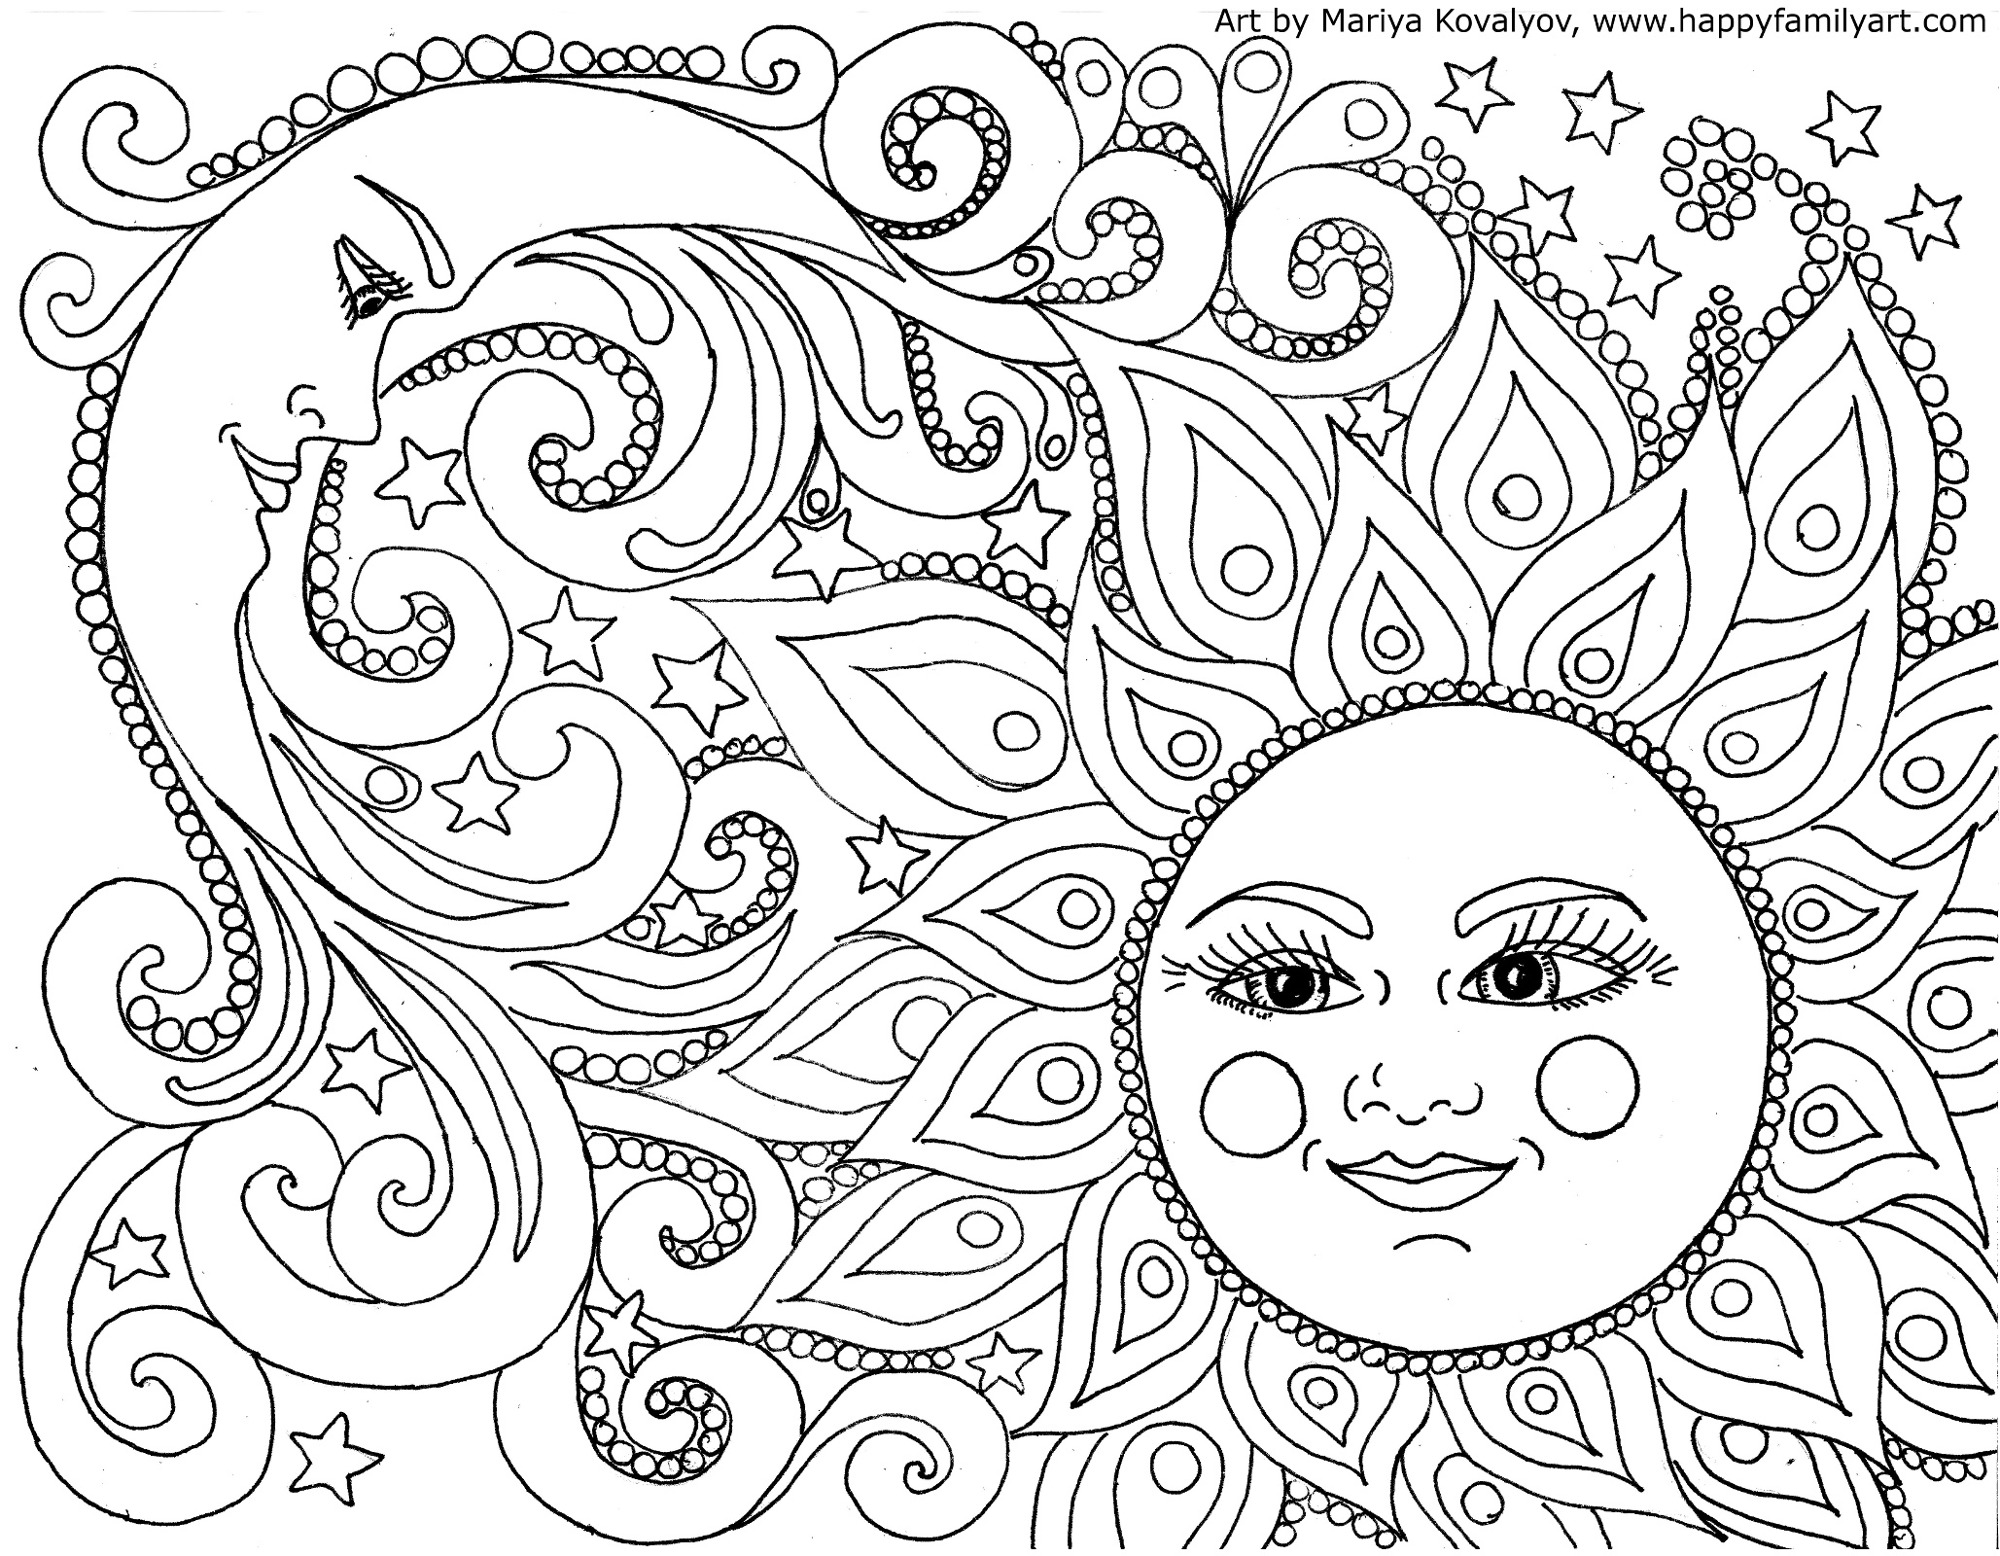 Coloring Pages Extraordinary Happy Family Art  Original And Fun Coloring Pages Inspiration Design